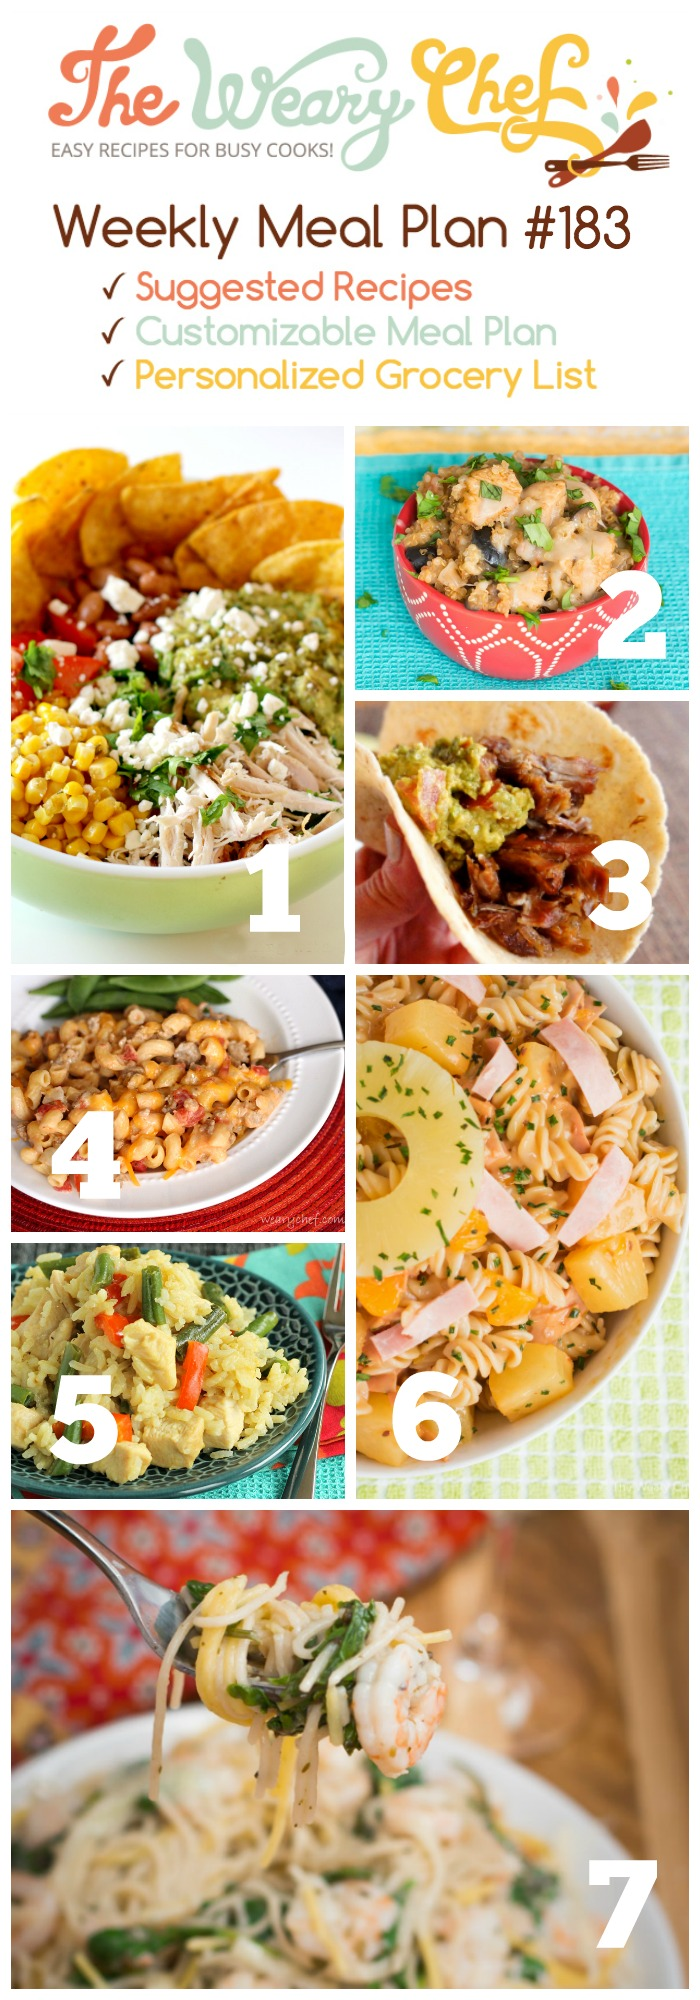 This easy dinner menu features Thai Curry Skillet, Taco Salad, Hawaiian Pasta Salad, and lots more!